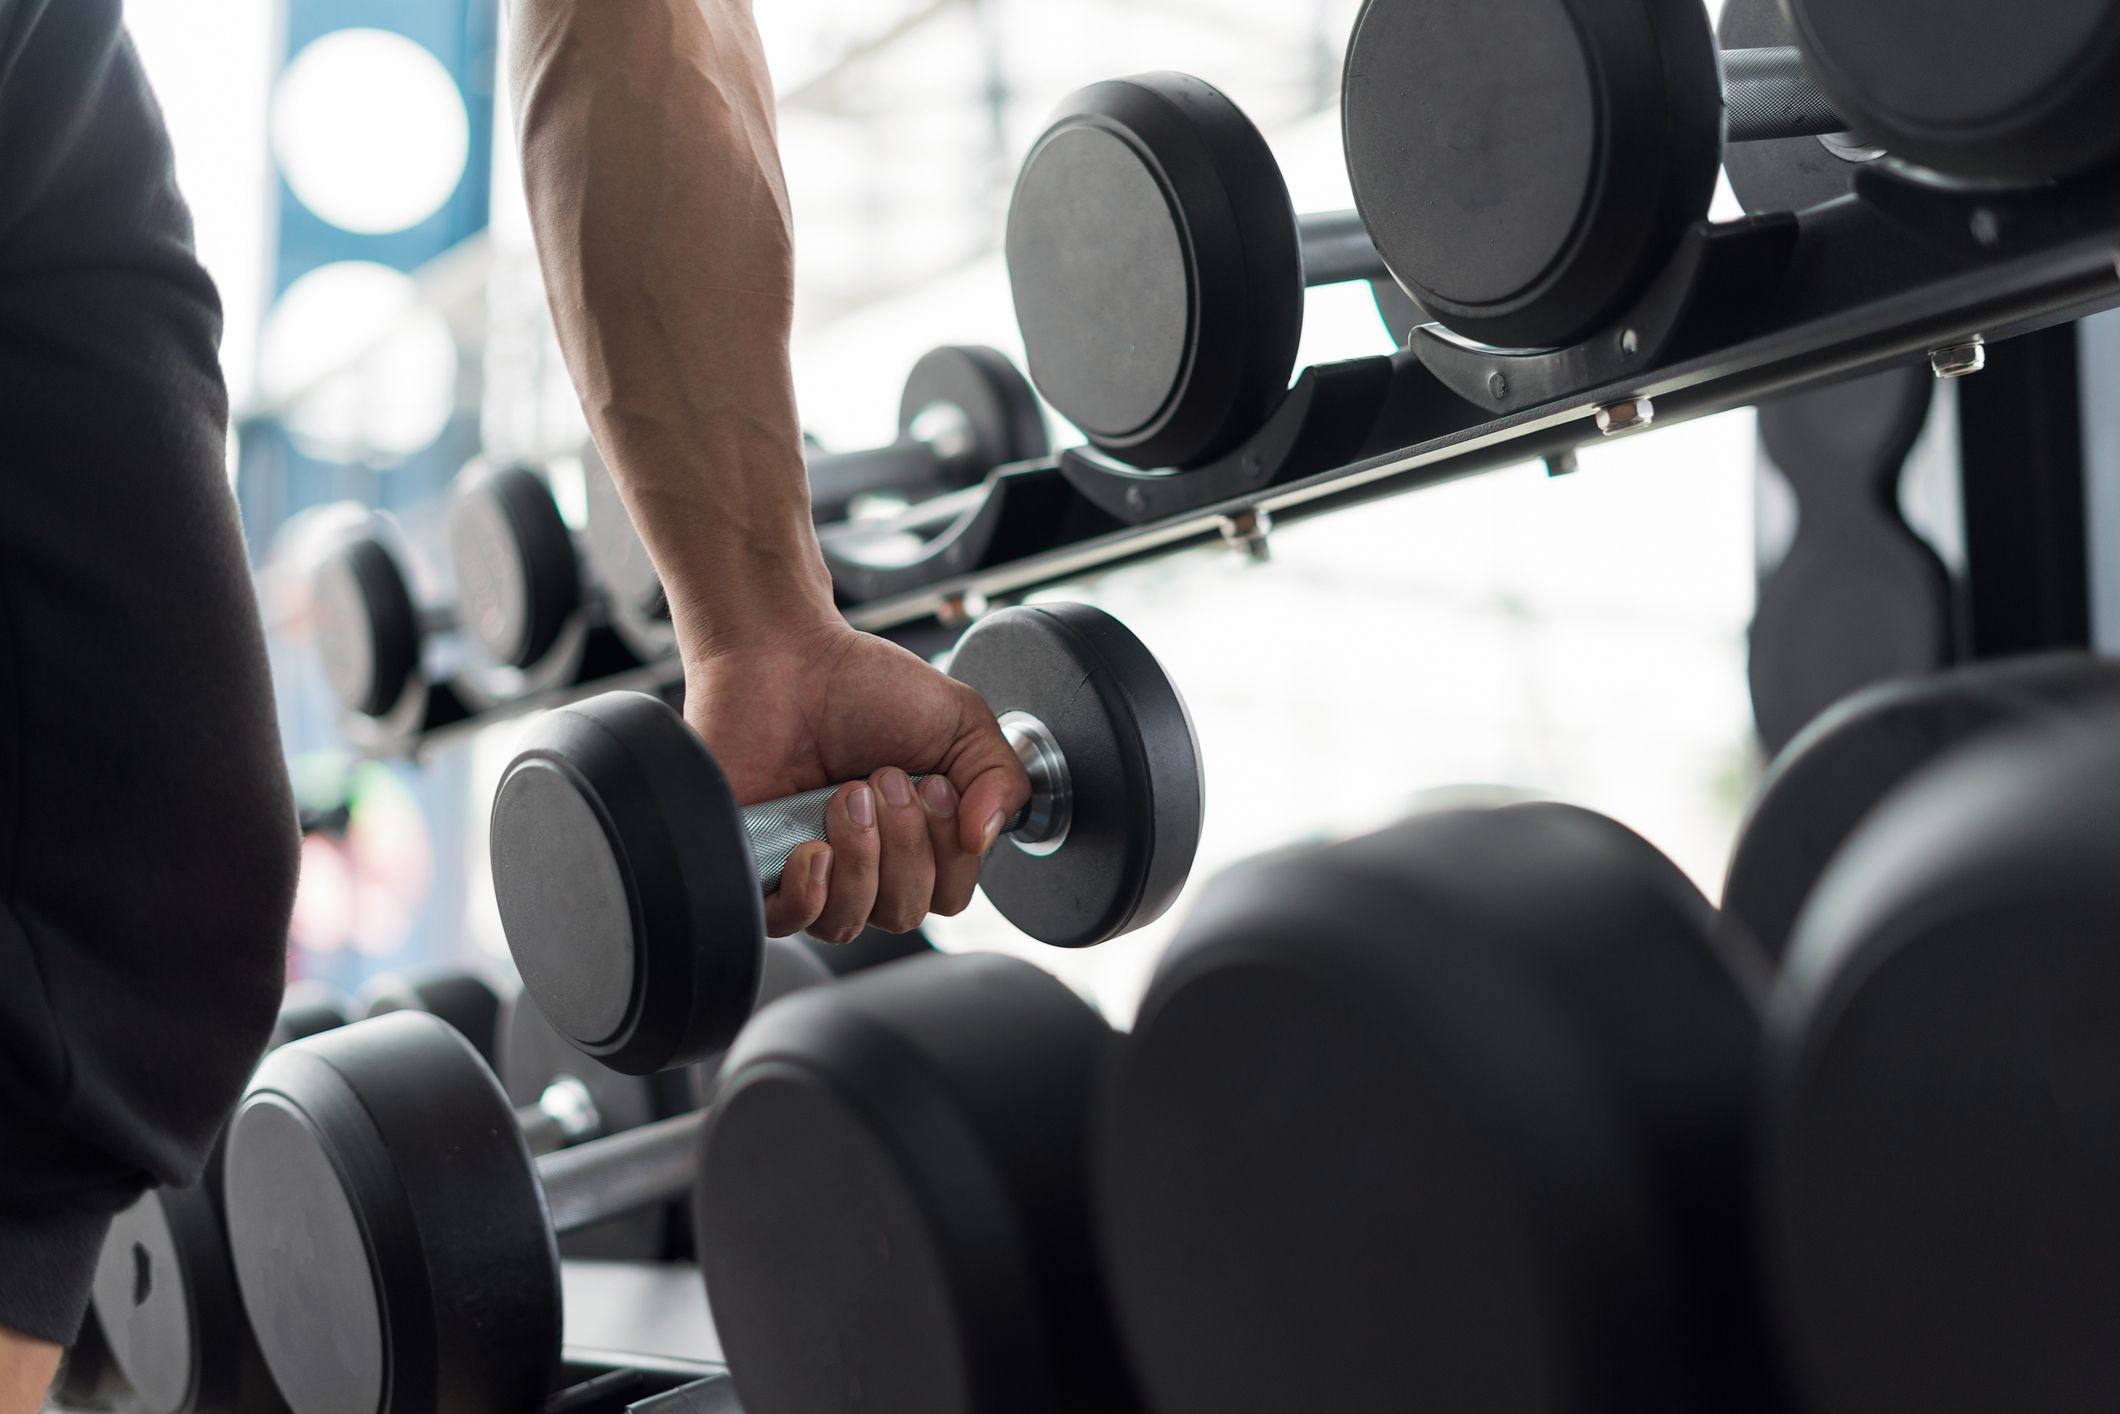 Youre Going To Need Heavier Weights To Make Any Gains